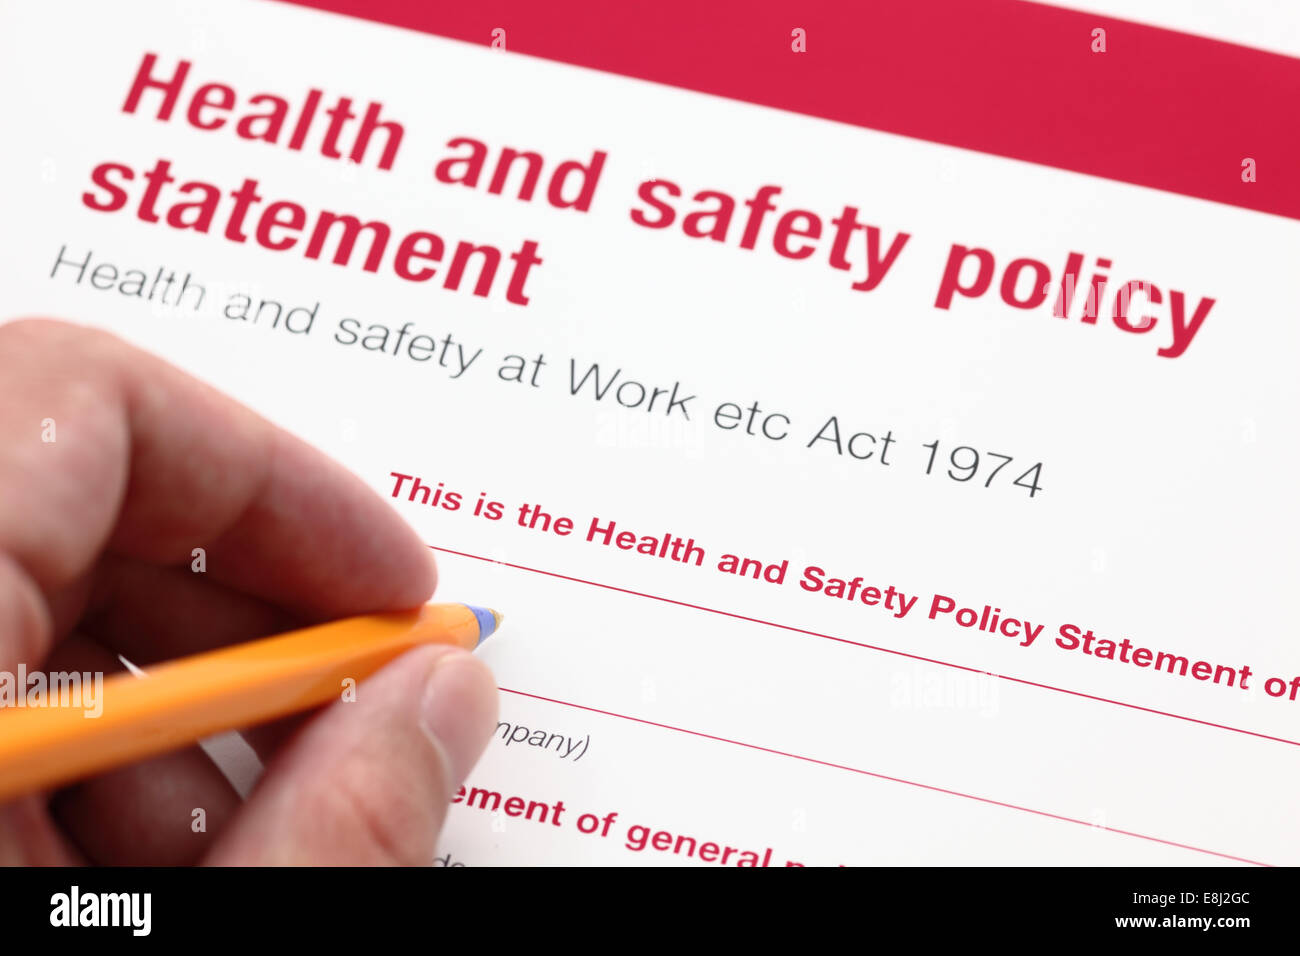 Health and safety policy statement and hand with ballpoint pen. - Stock Image